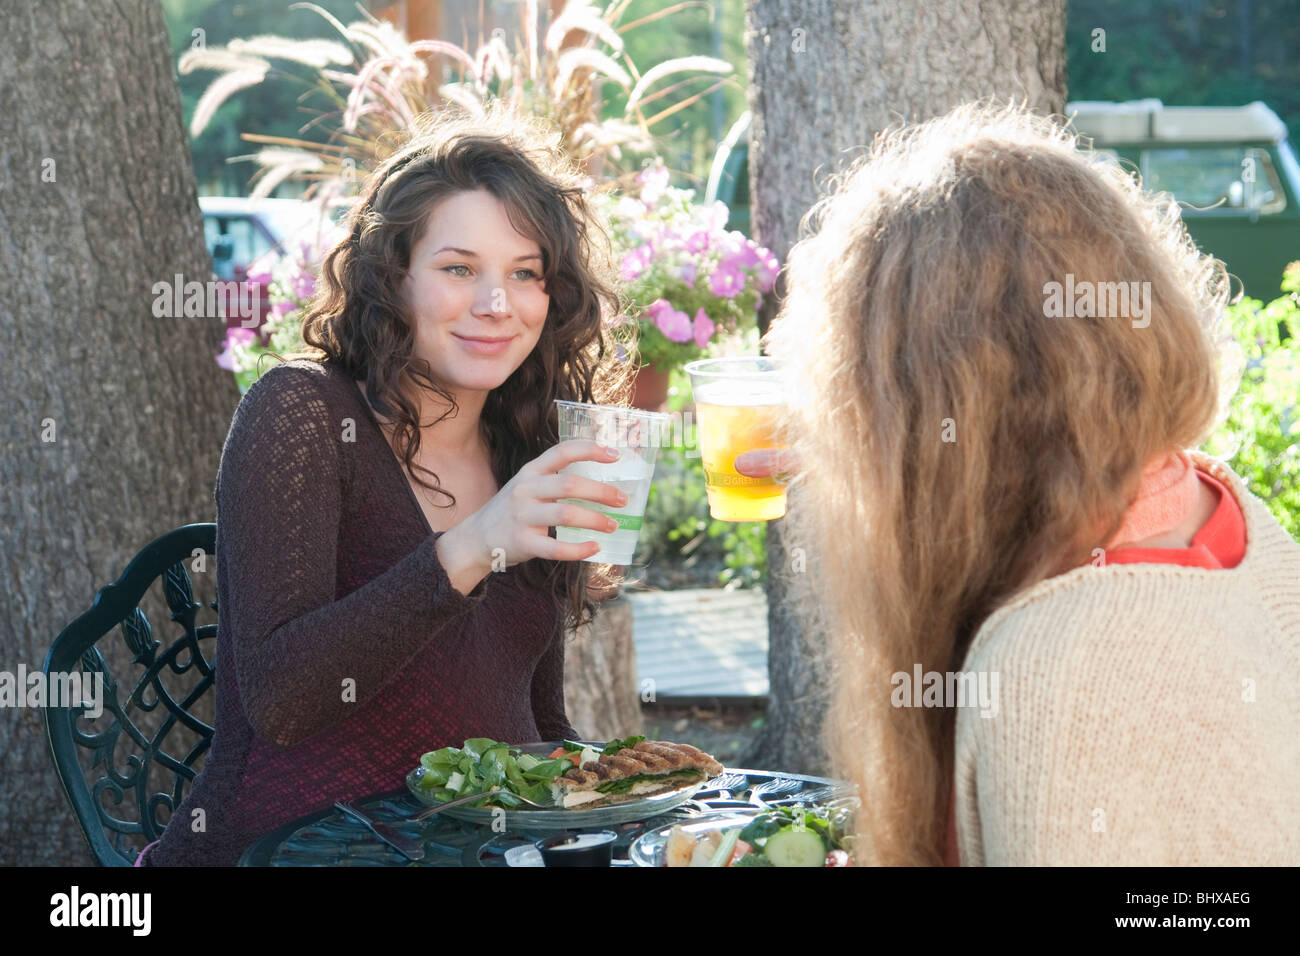 Pregnant Woman And Friend Eating At Outdoor Restaurant, Manitoba, Canada - Stock Image